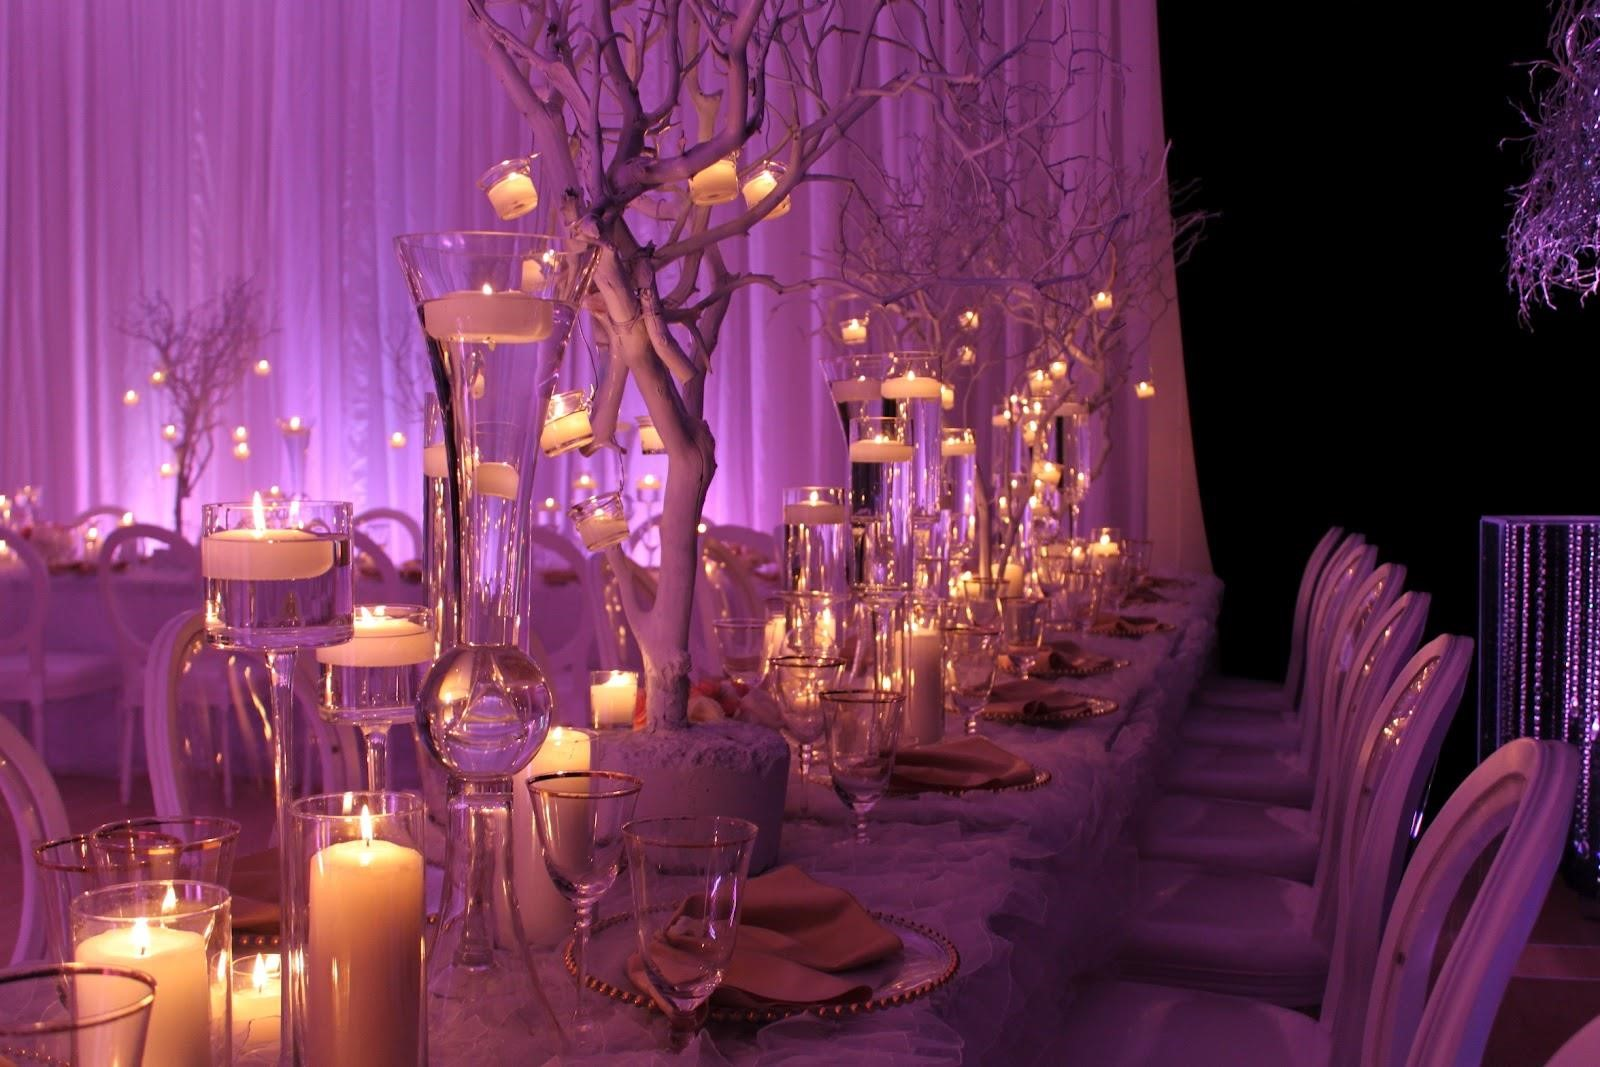 Decor Themes White Gold With A Splash Of Purple Lighting I Do Ghana